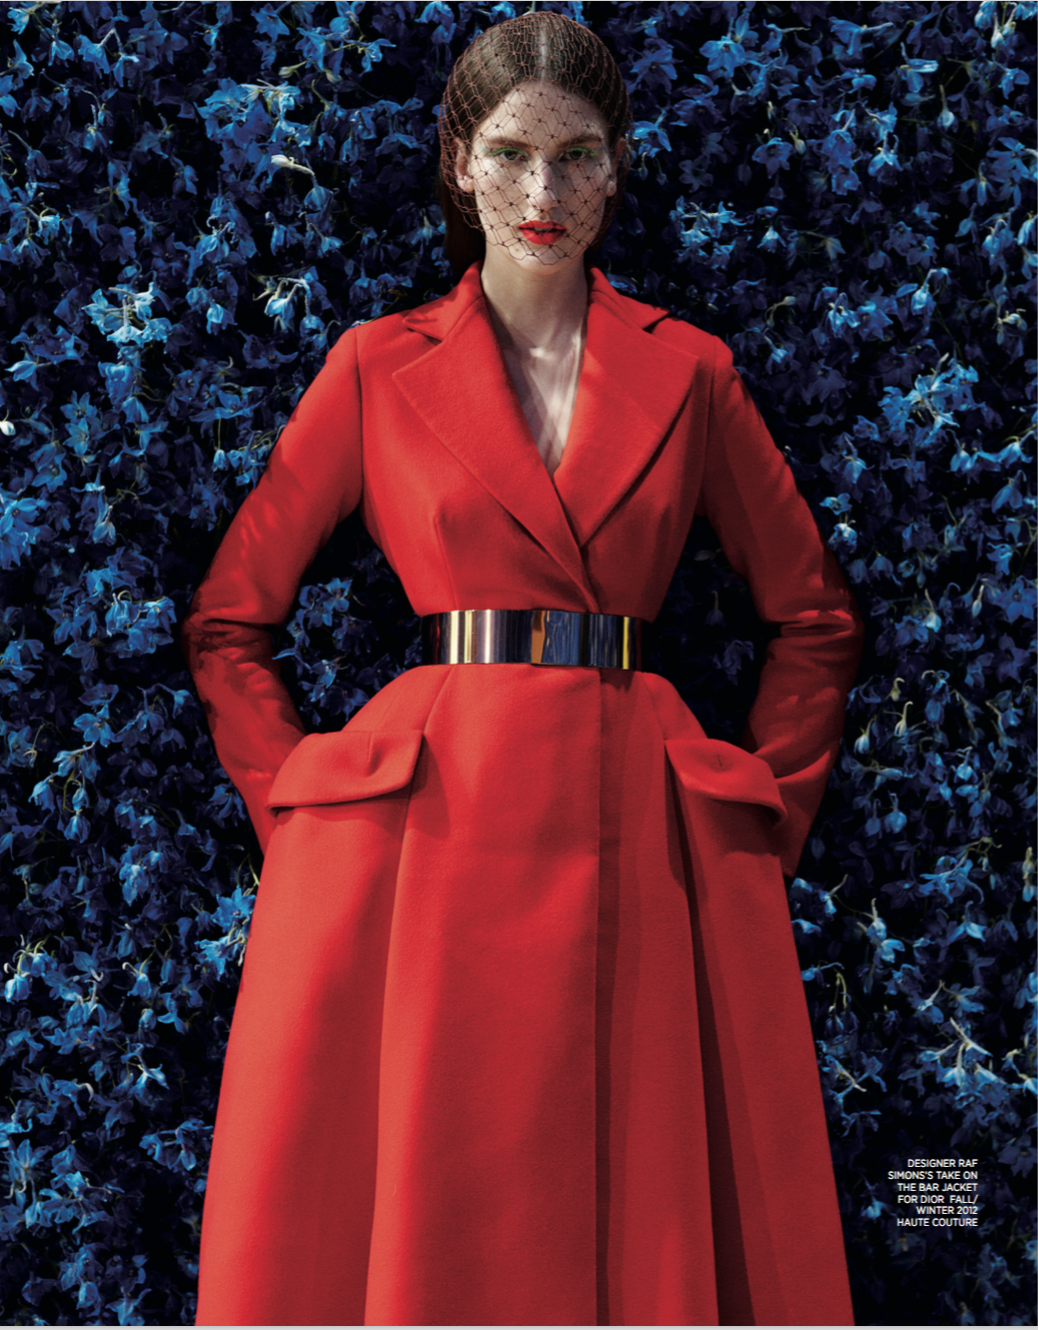 Dior by Leah Van Loon for S magazine Page 2